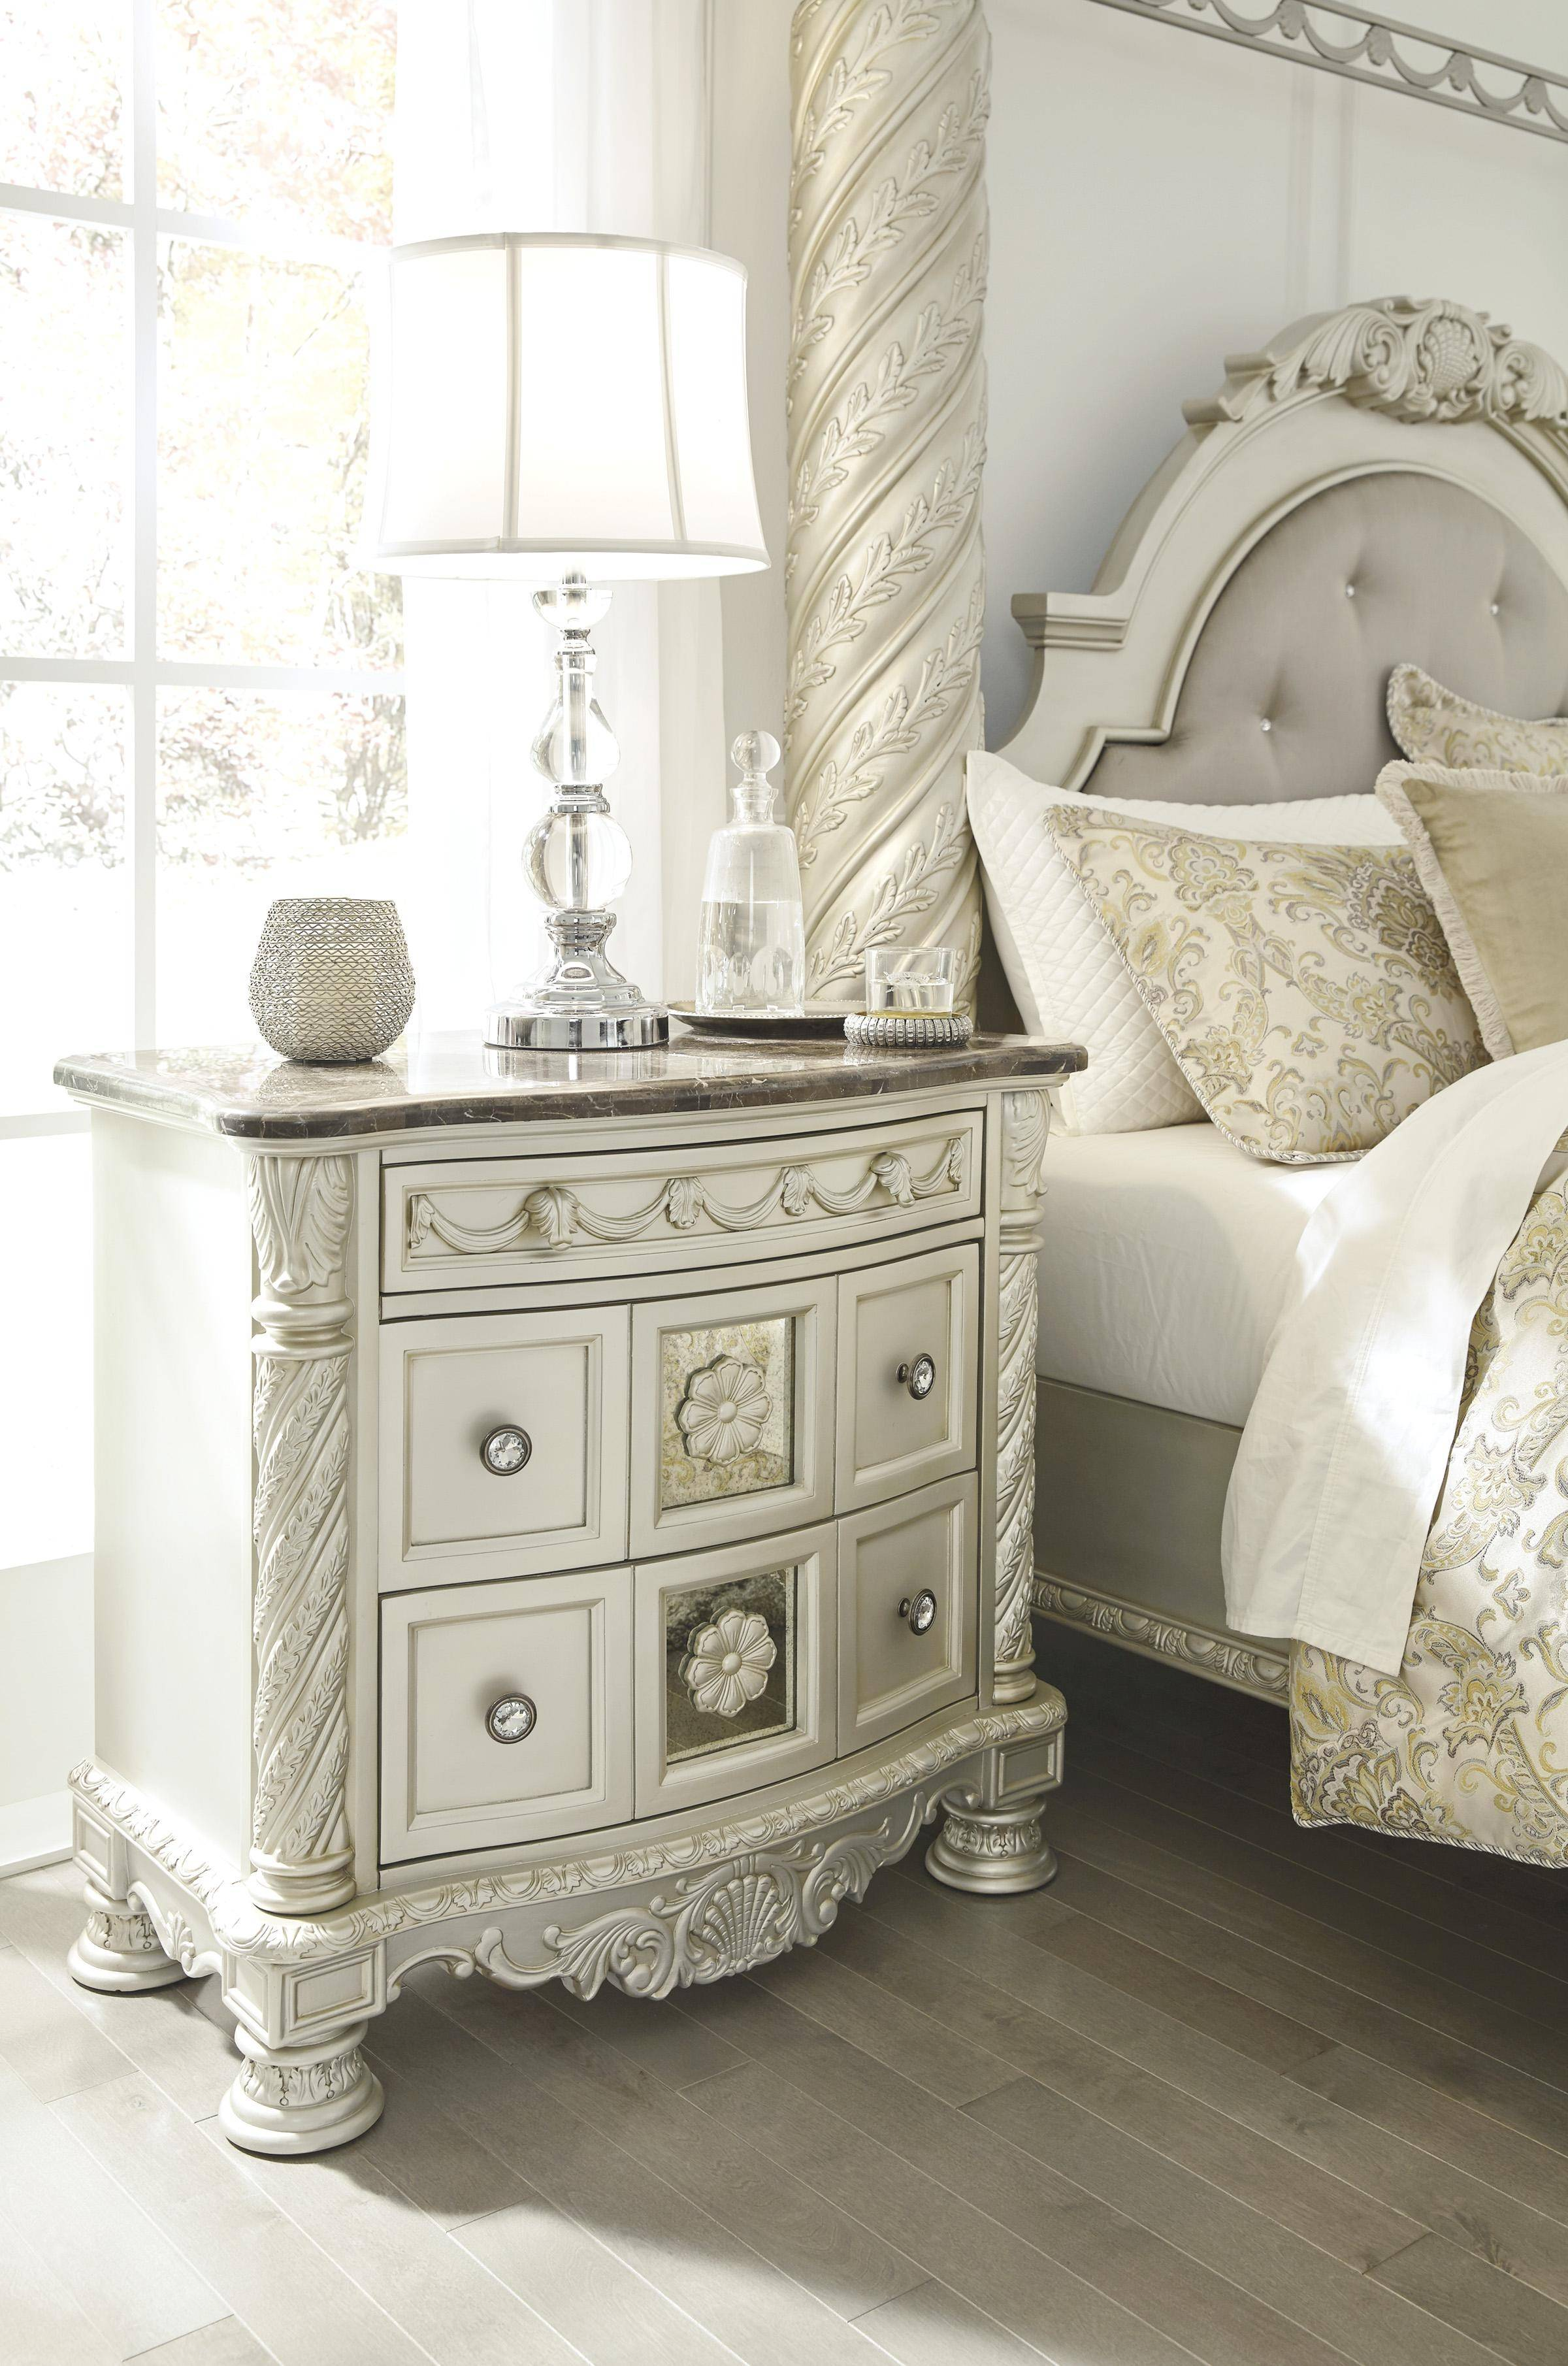 Ashley Cassimore B750 King Size Panel Bedroom Set 5pcs In Pearl Silver B750 58 56 97 31 36 93 2 Set 5